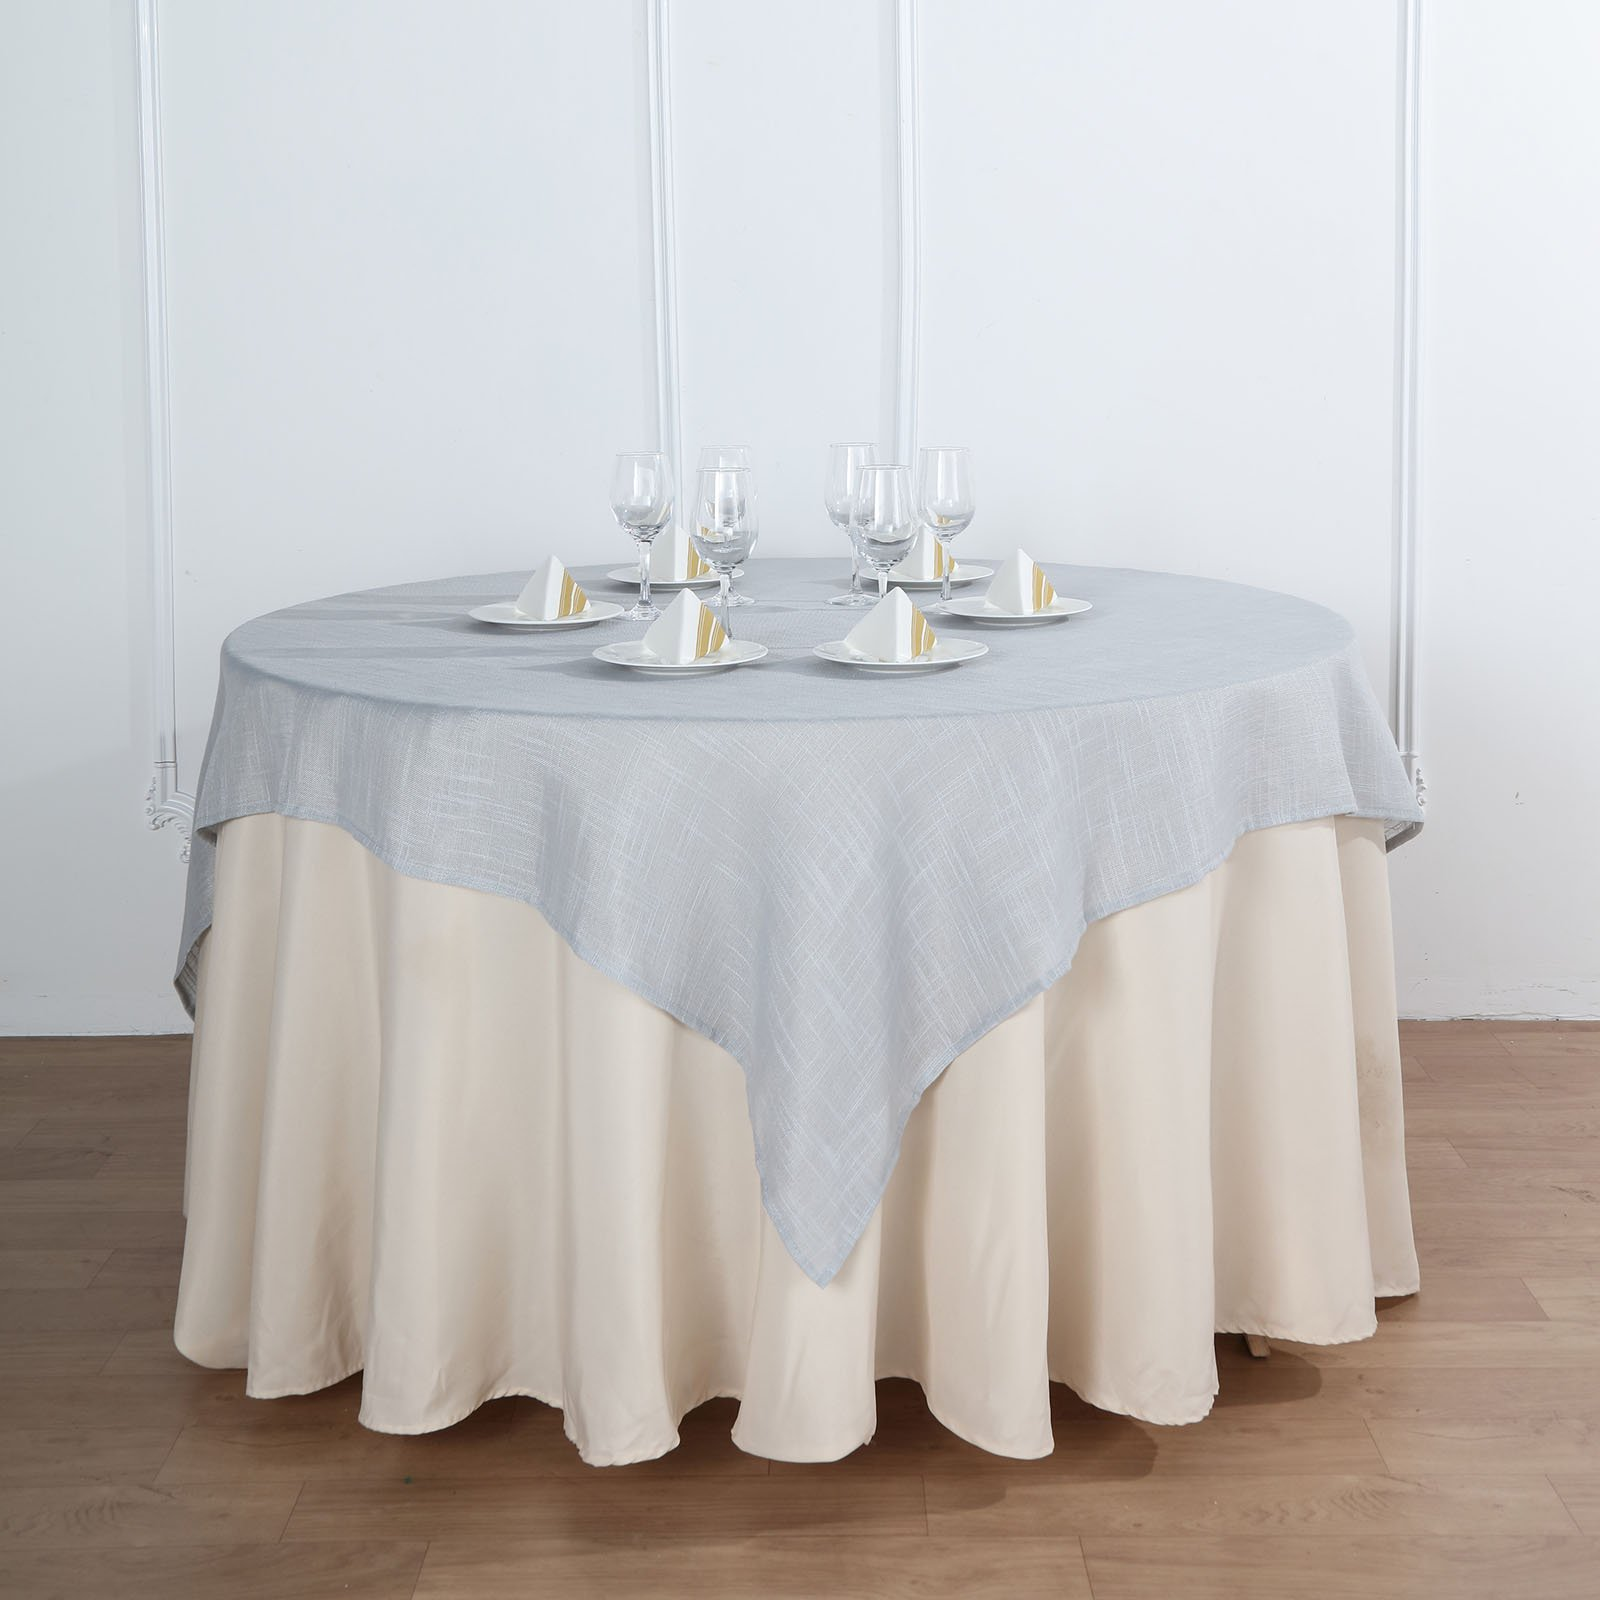 Silver 72x72 Square Table Overlay Premium Faux Burlap Polyester Wedding Ebay